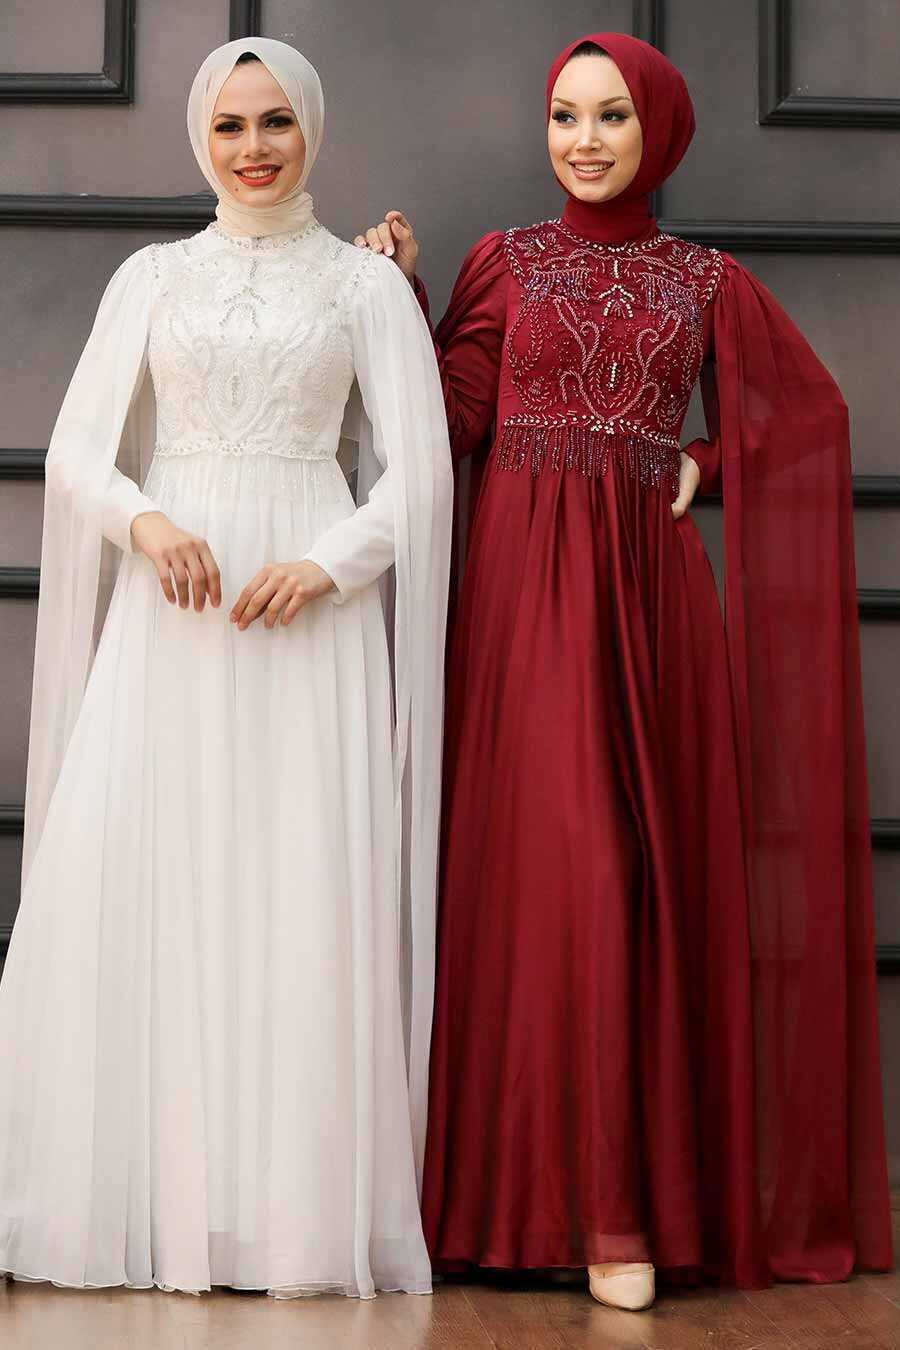 Claret Red Hijab Evening Dress 22162BR